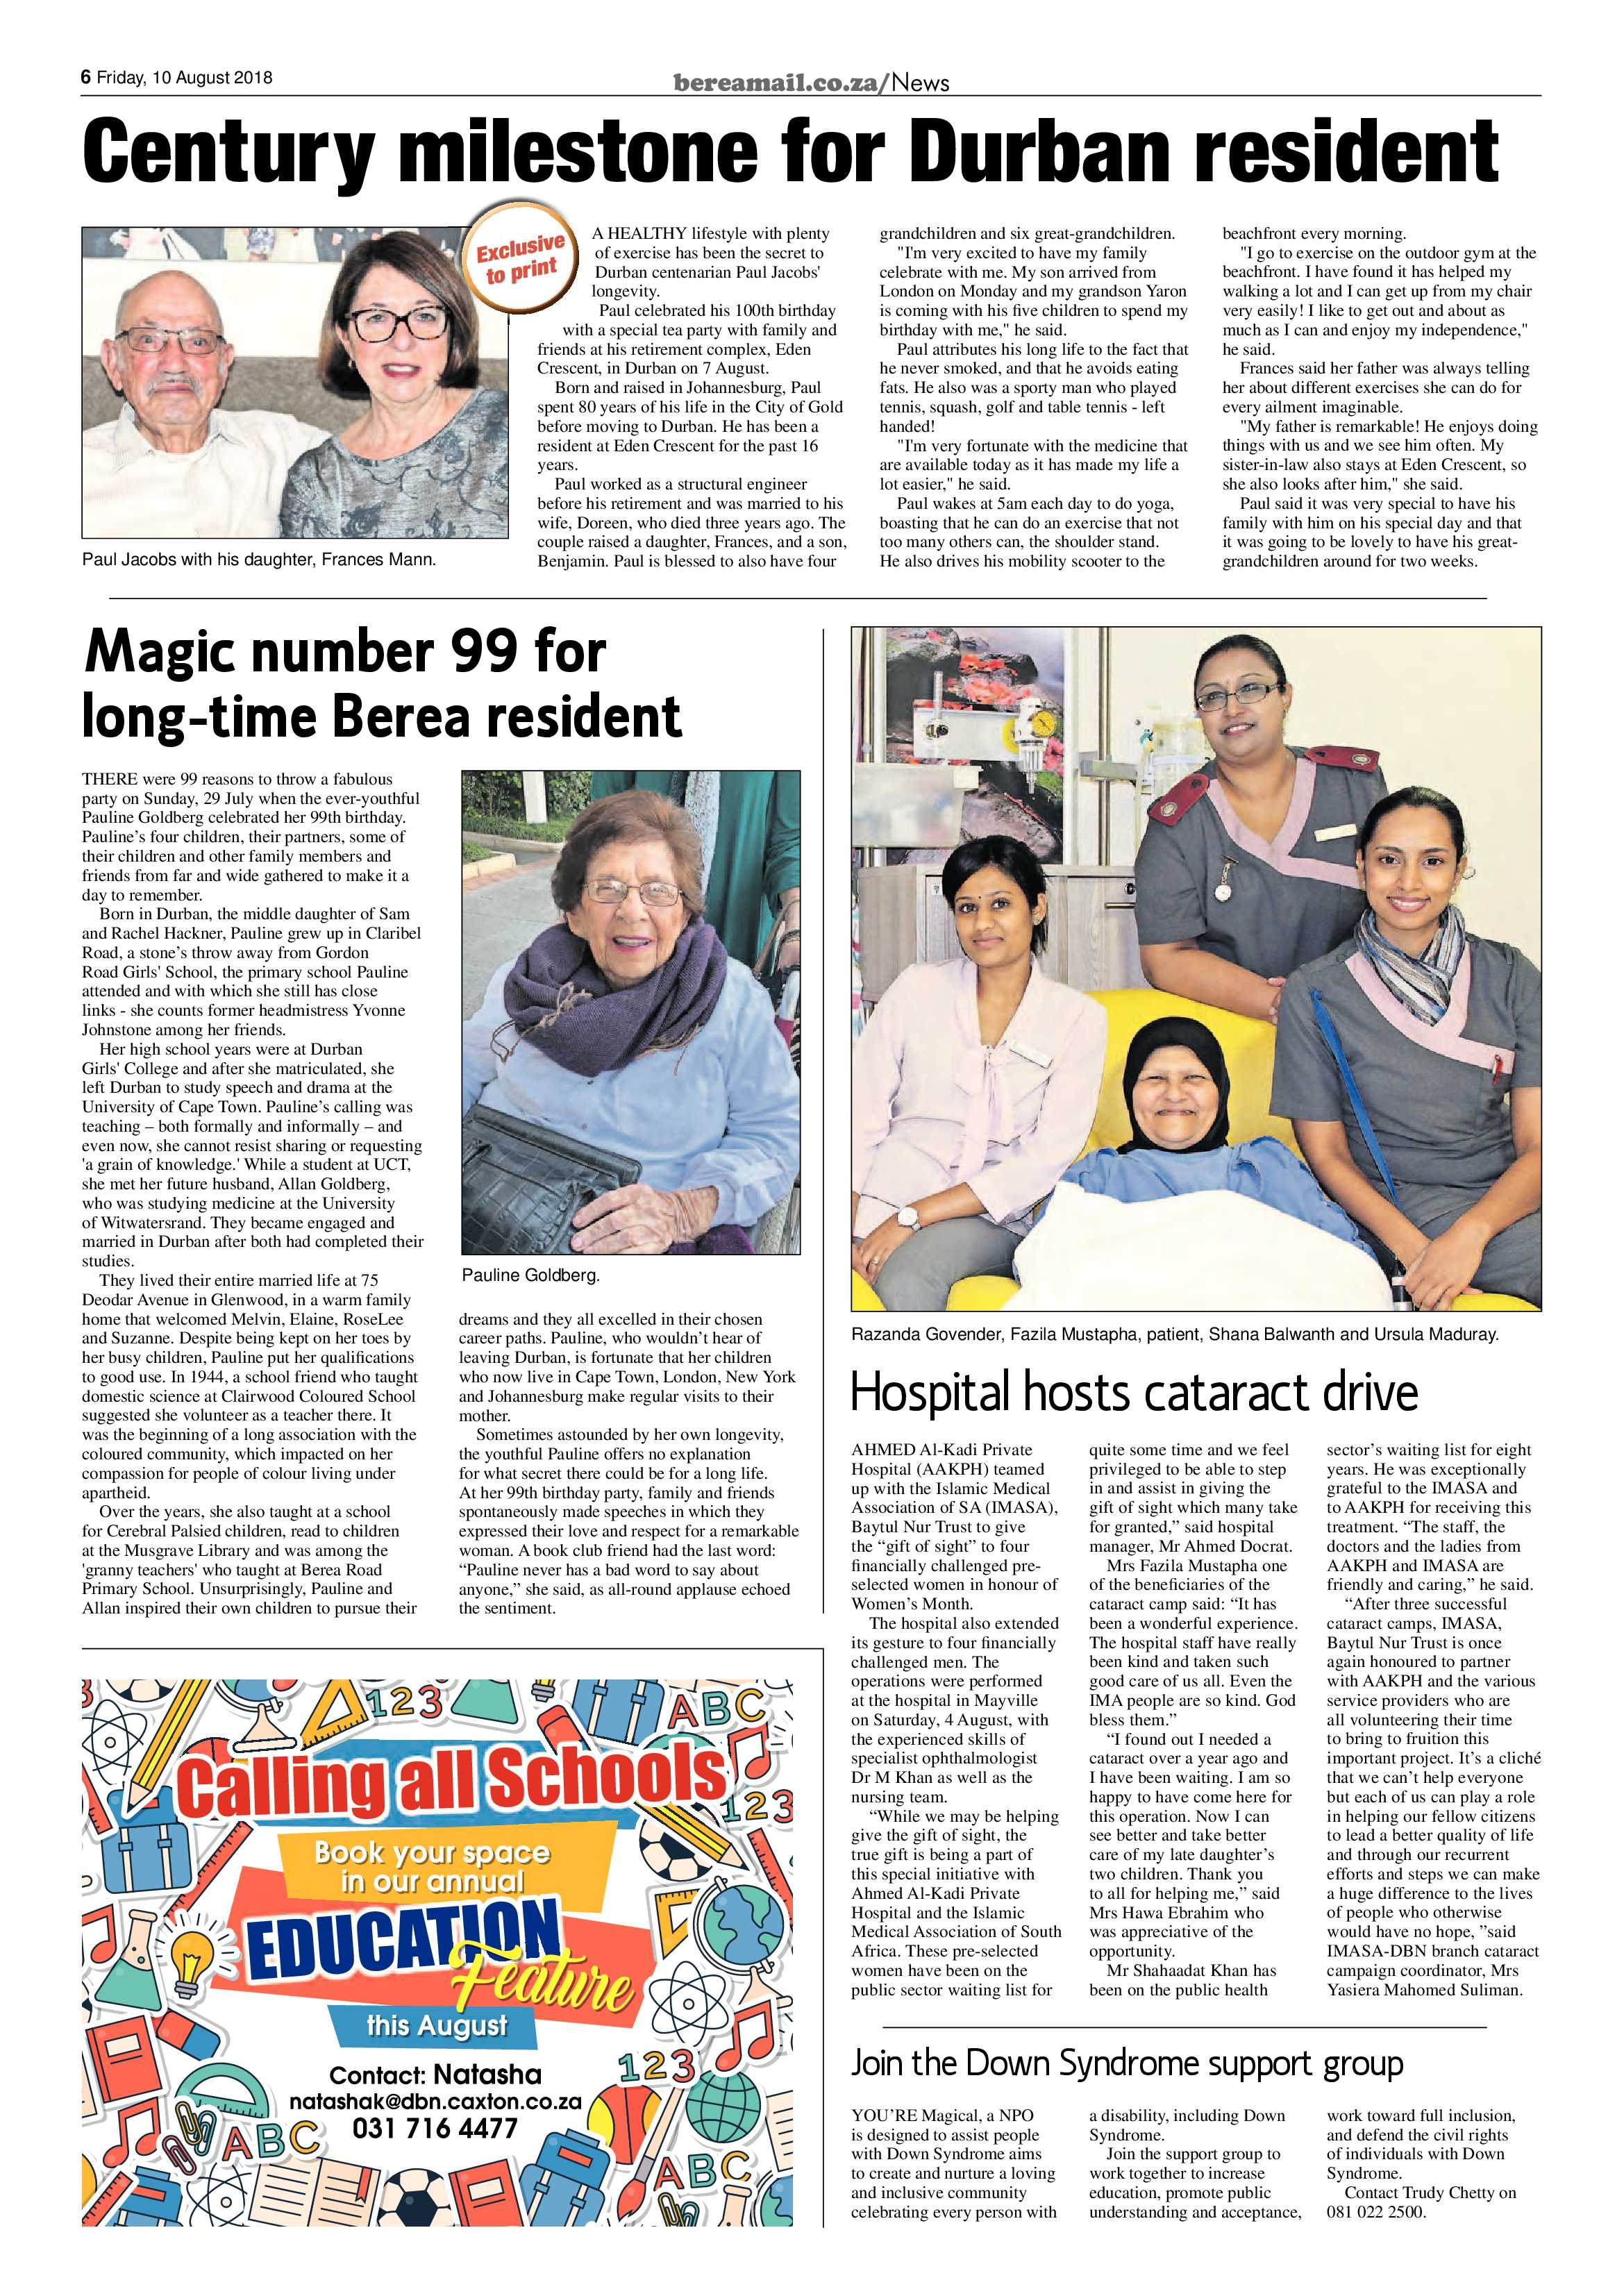 berea-mail-10-august-2018-epapers-page-6